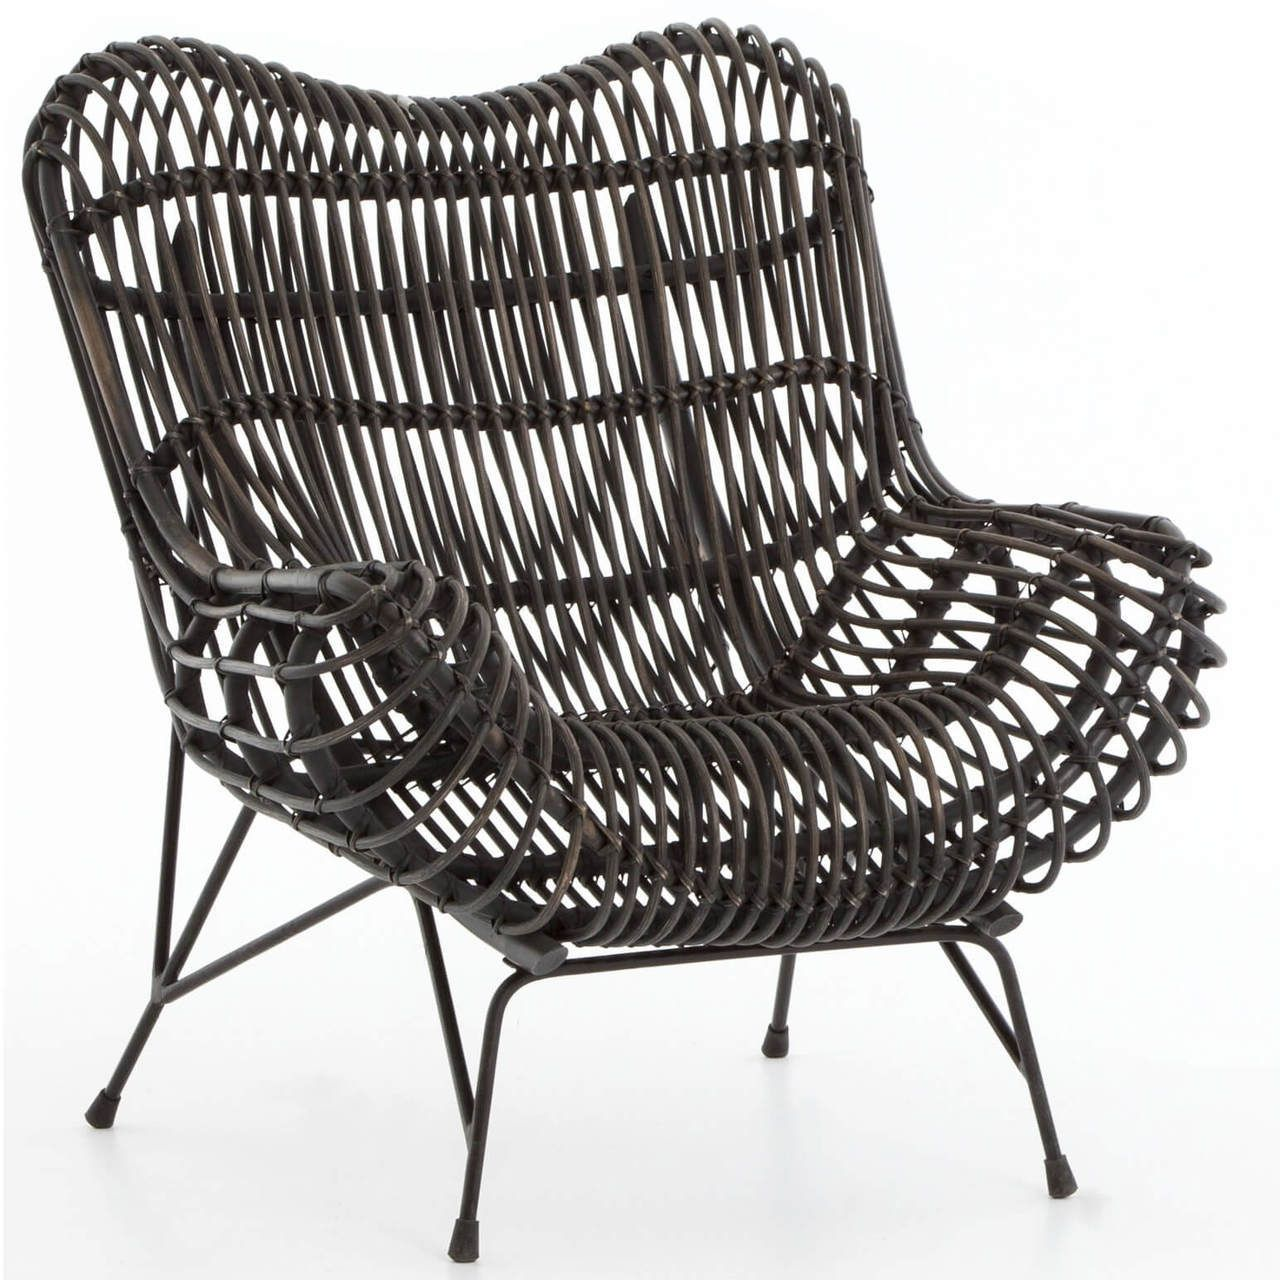 Coastal black iron and woven wicker accent chair in 2020